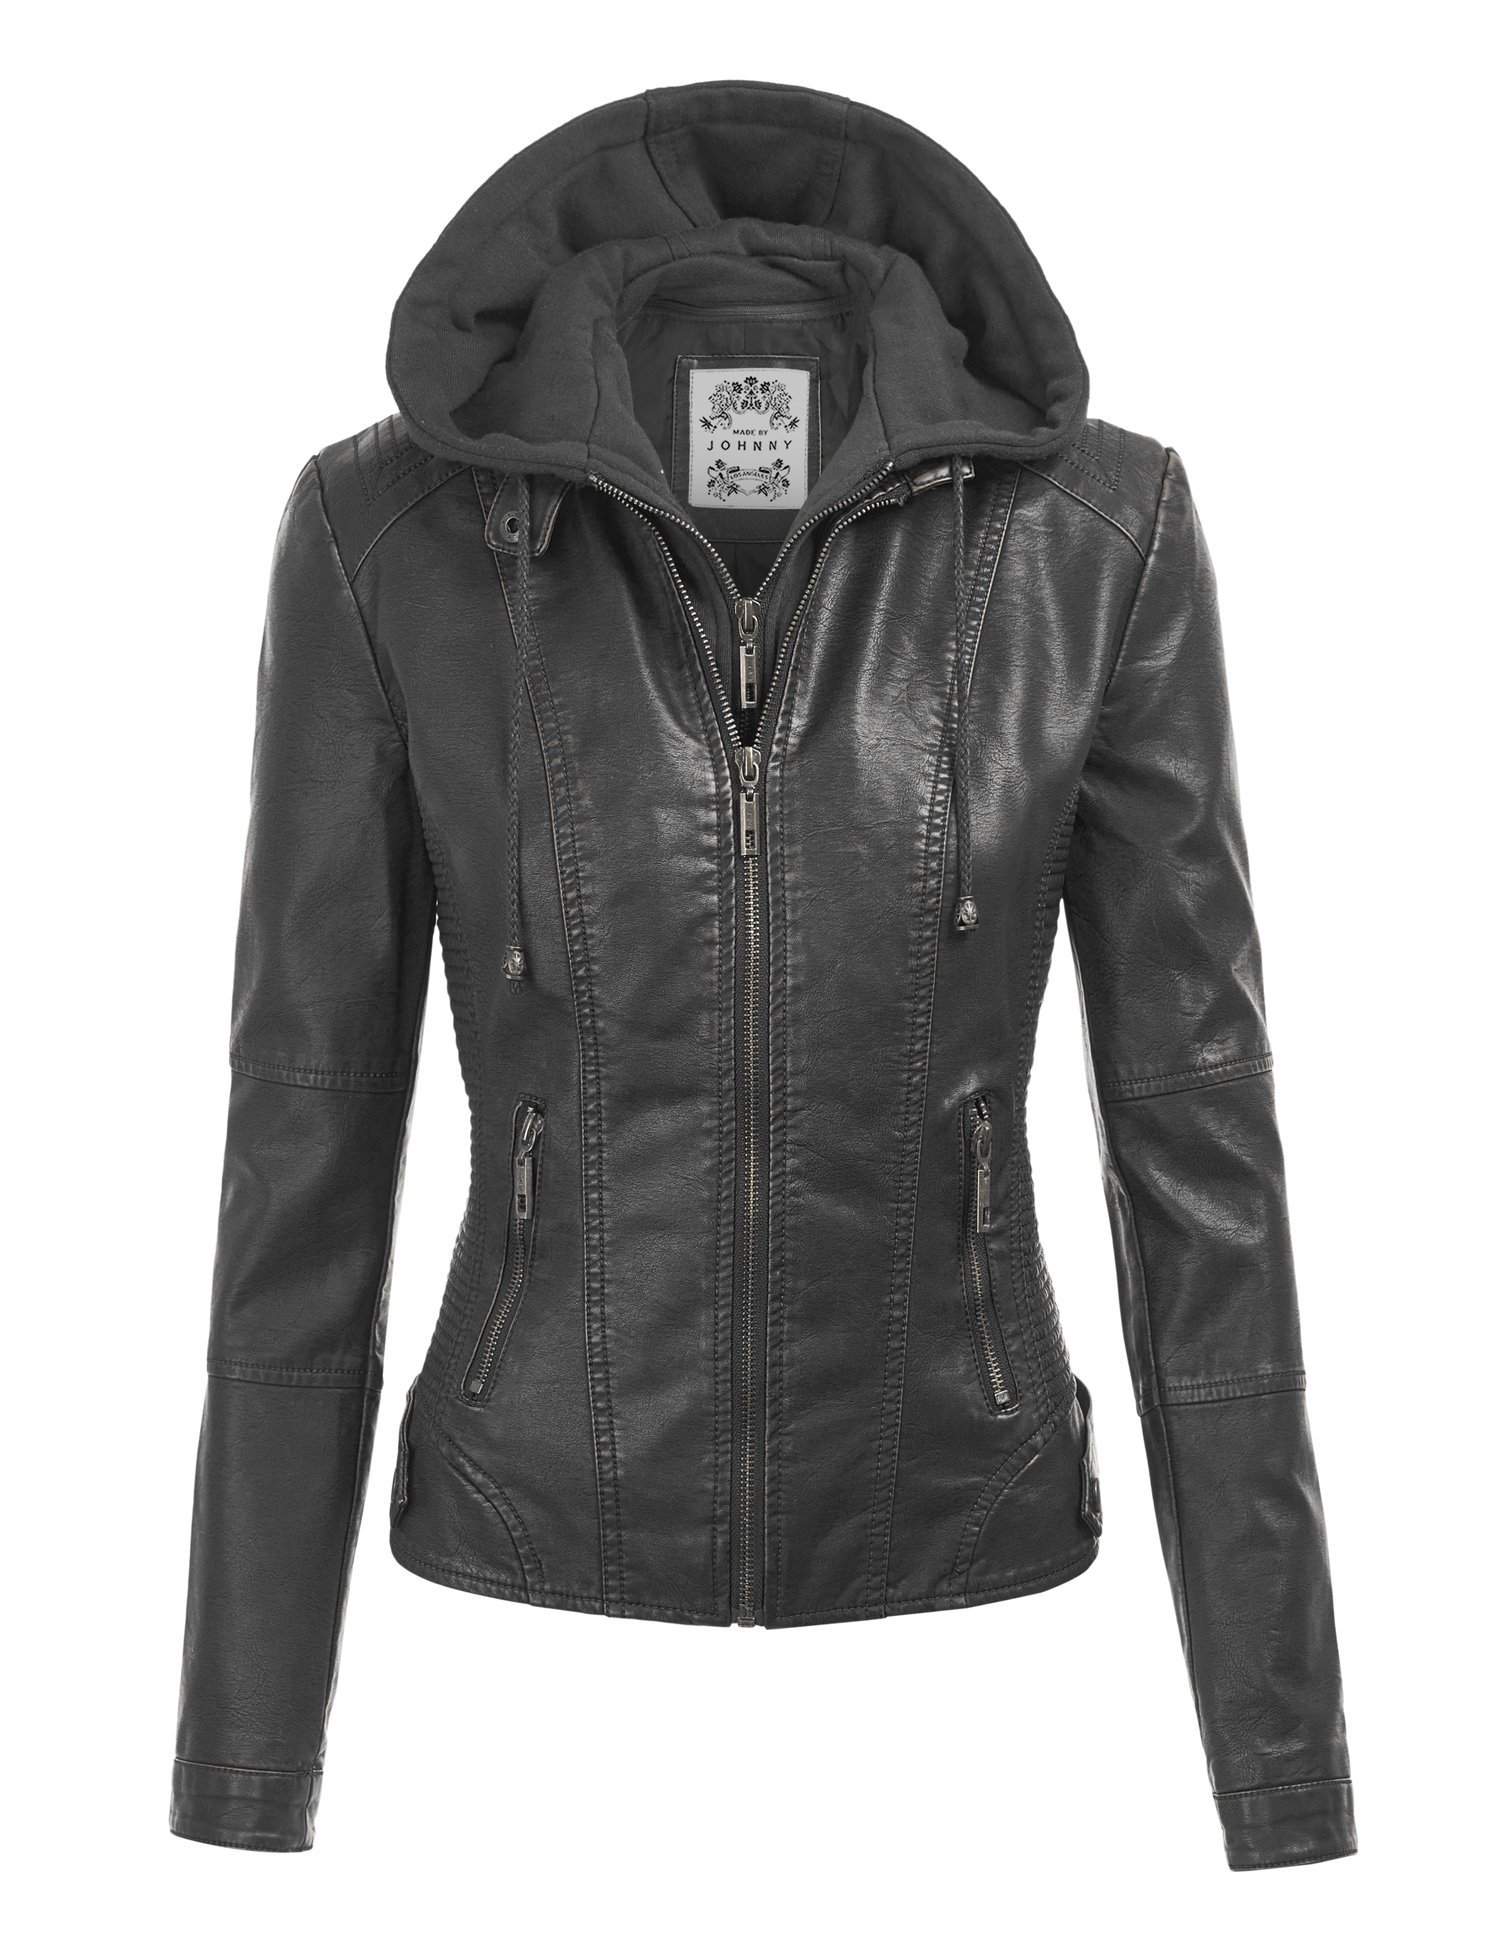 Made By Johnny WJC1044 Womens Faux Leather Quilted Motorcycle Jacket with Hoodie L Black